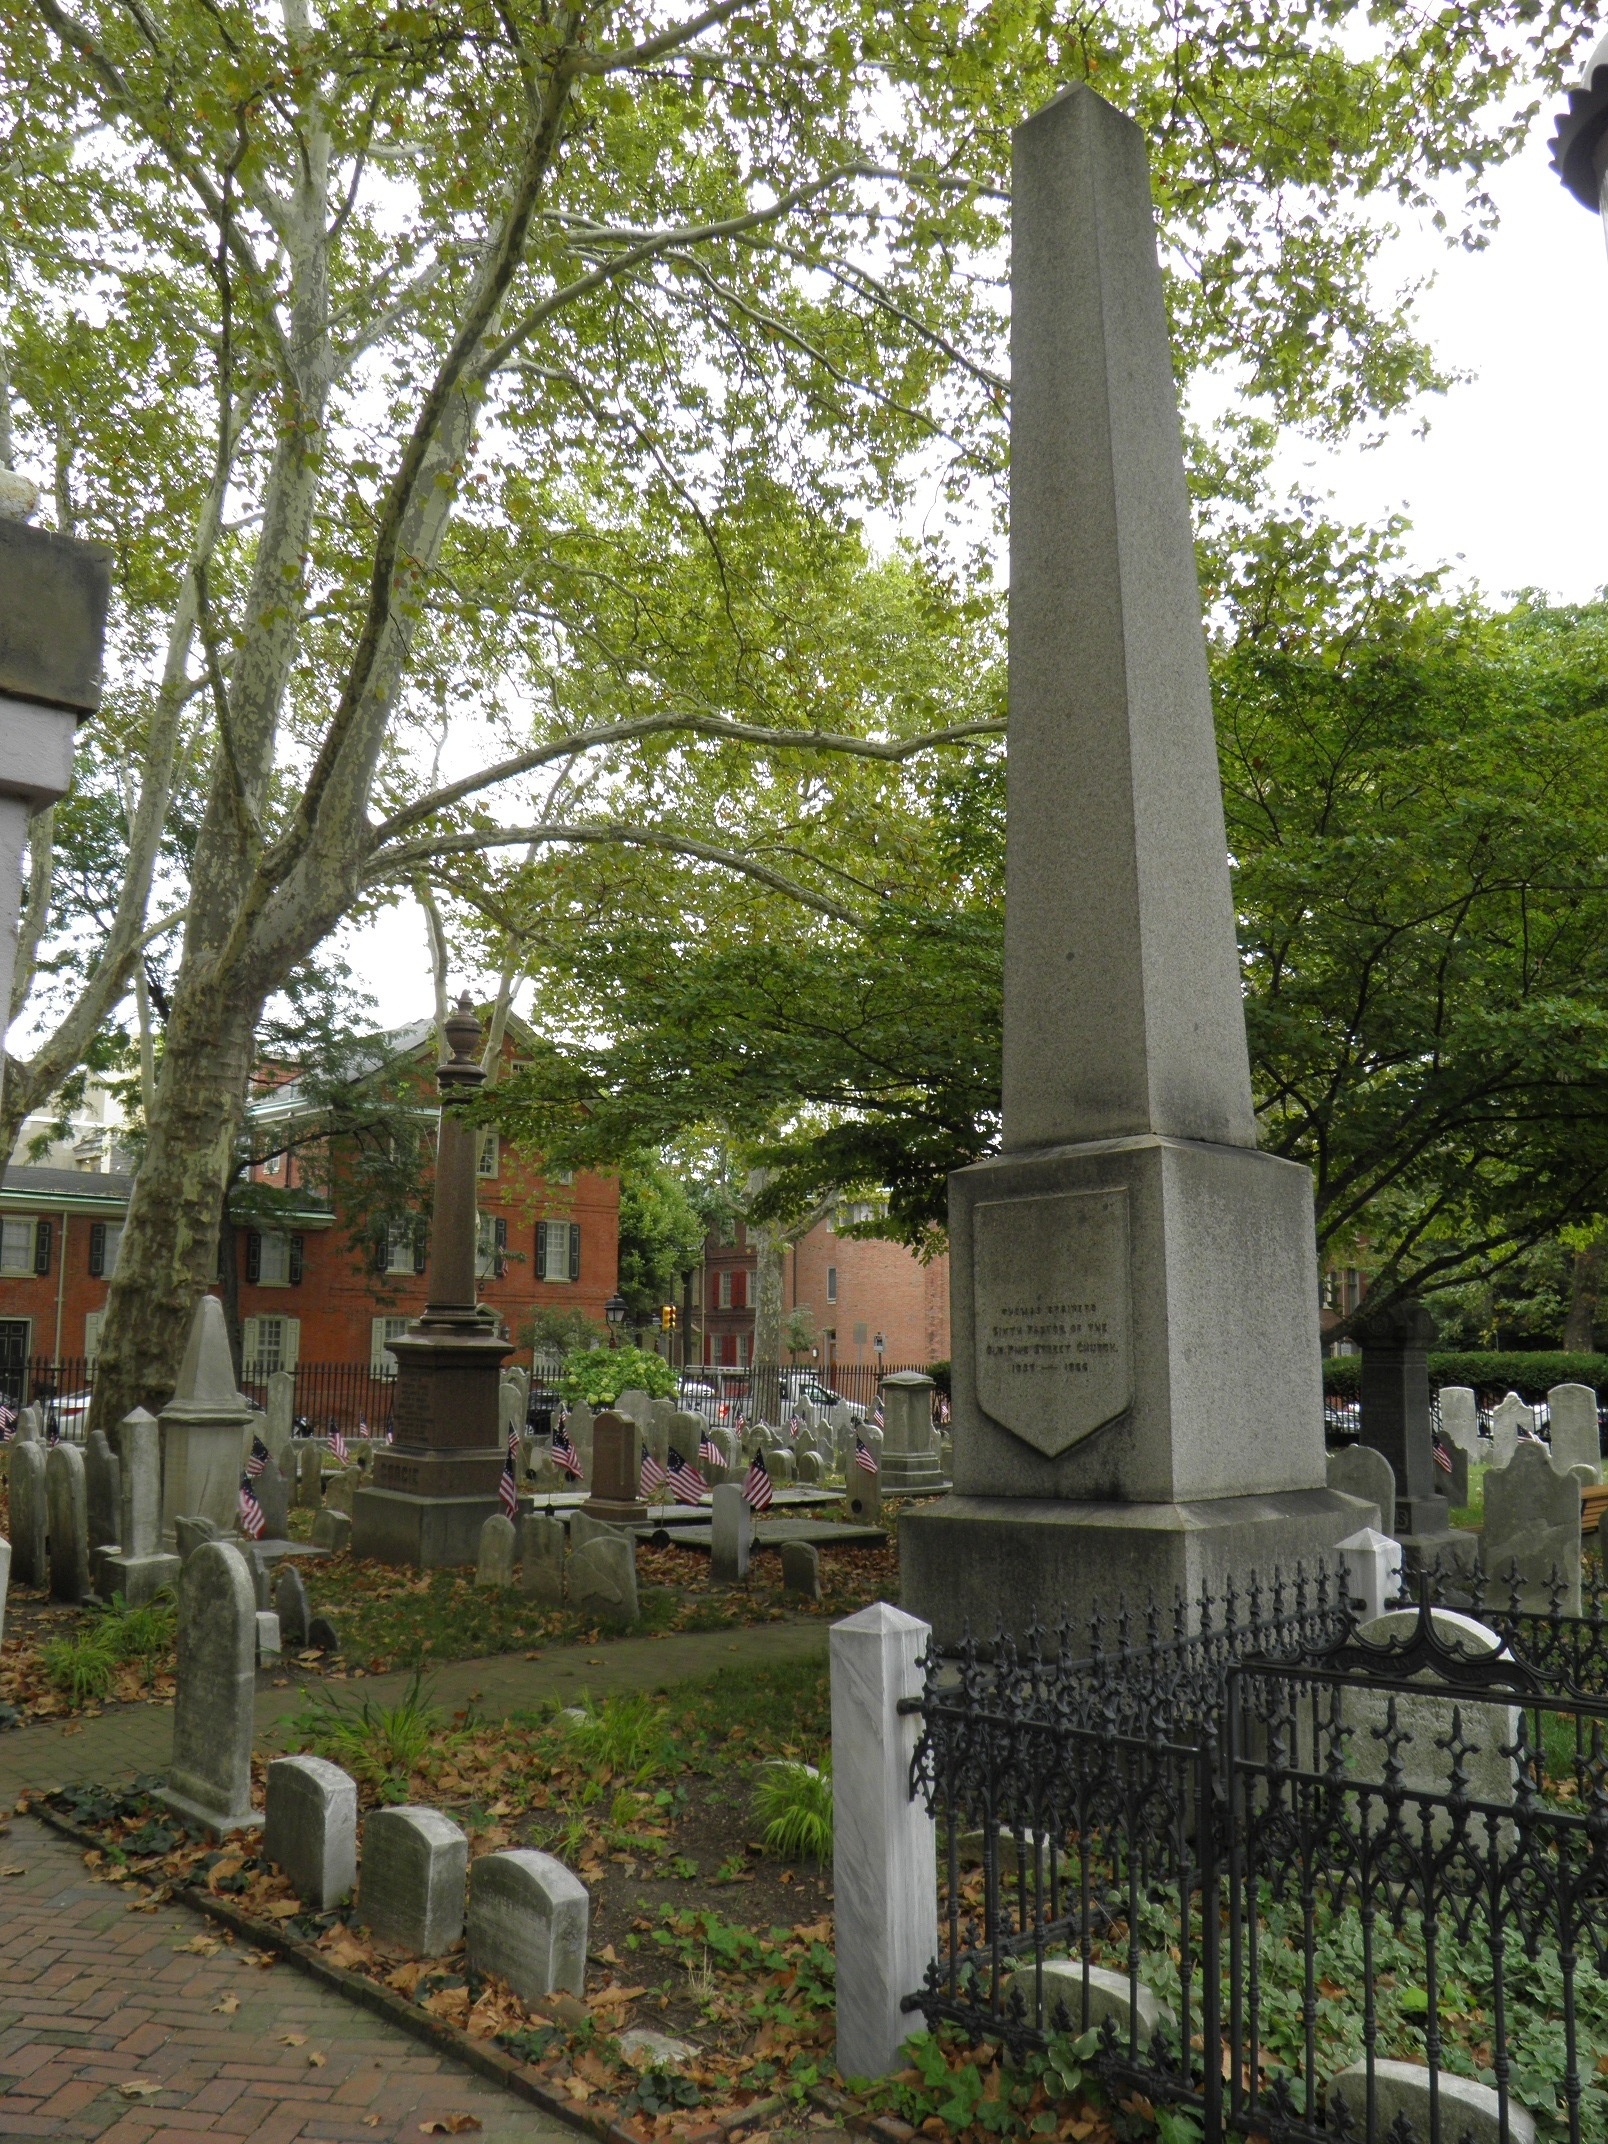 Thomas Brainerd is buried at Old Pine Street Presbyterian Church Cemetery, Philadelphia, Pennsylvania.